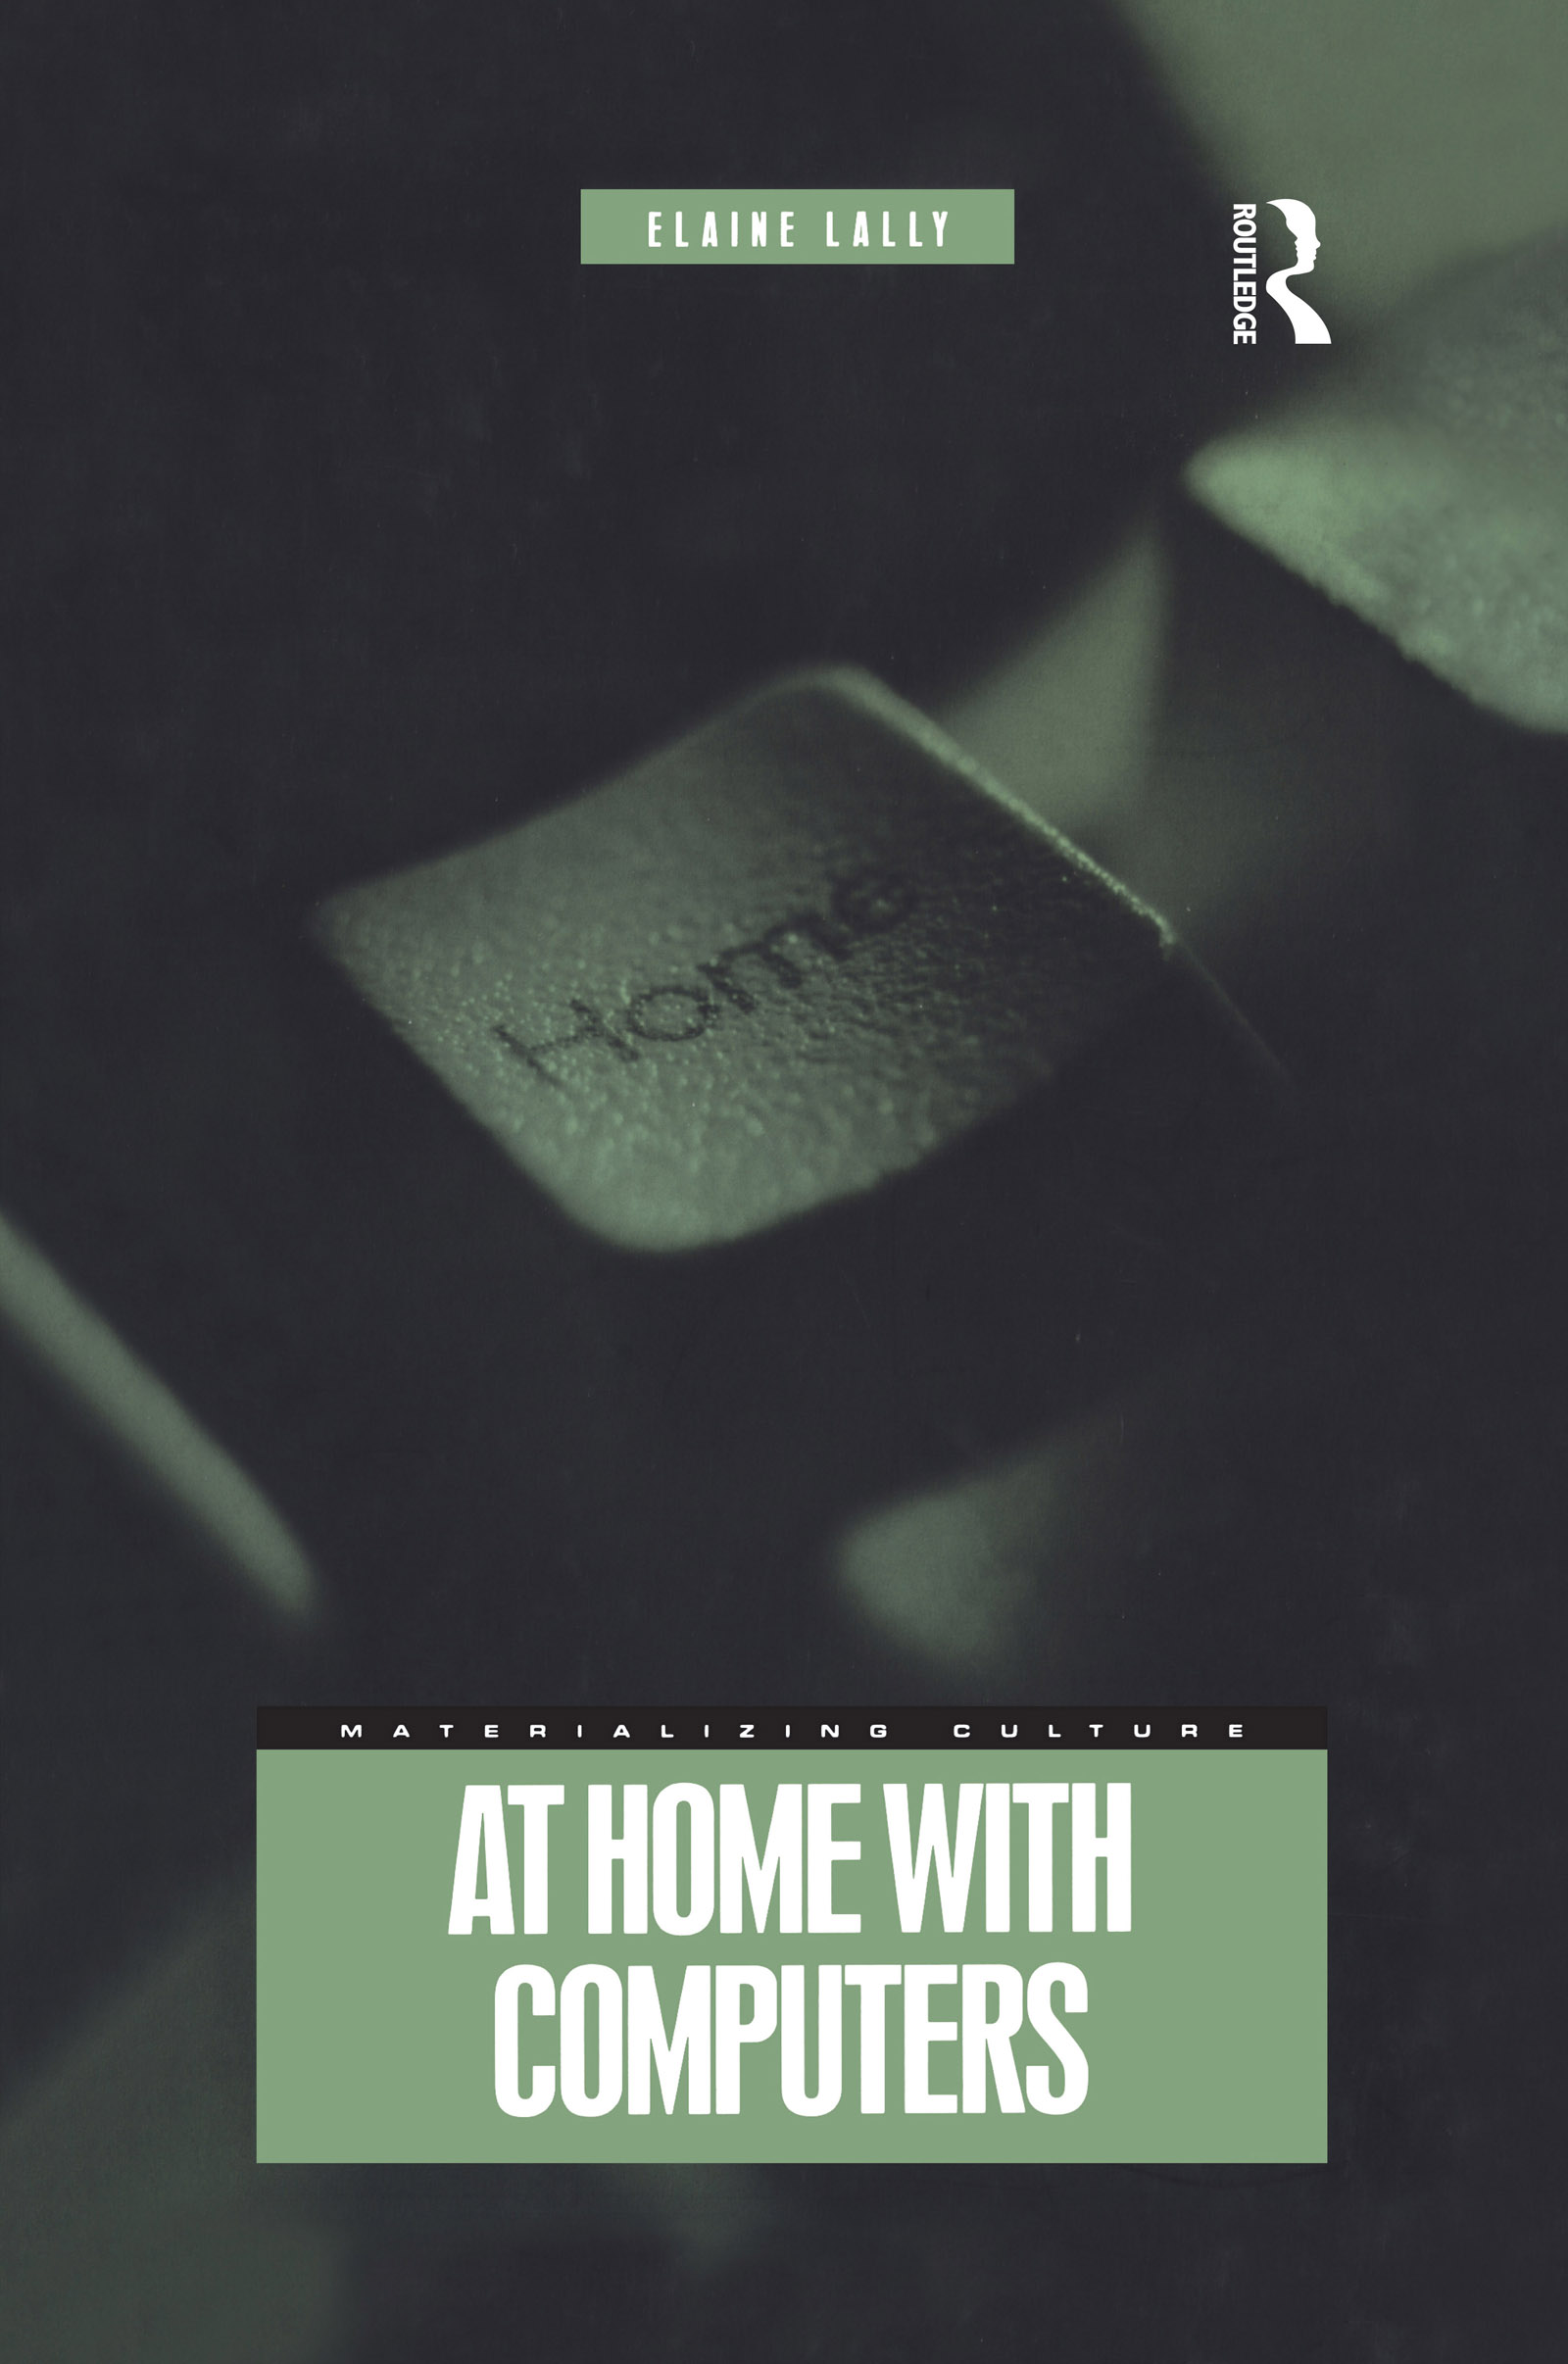 At Home with Computers